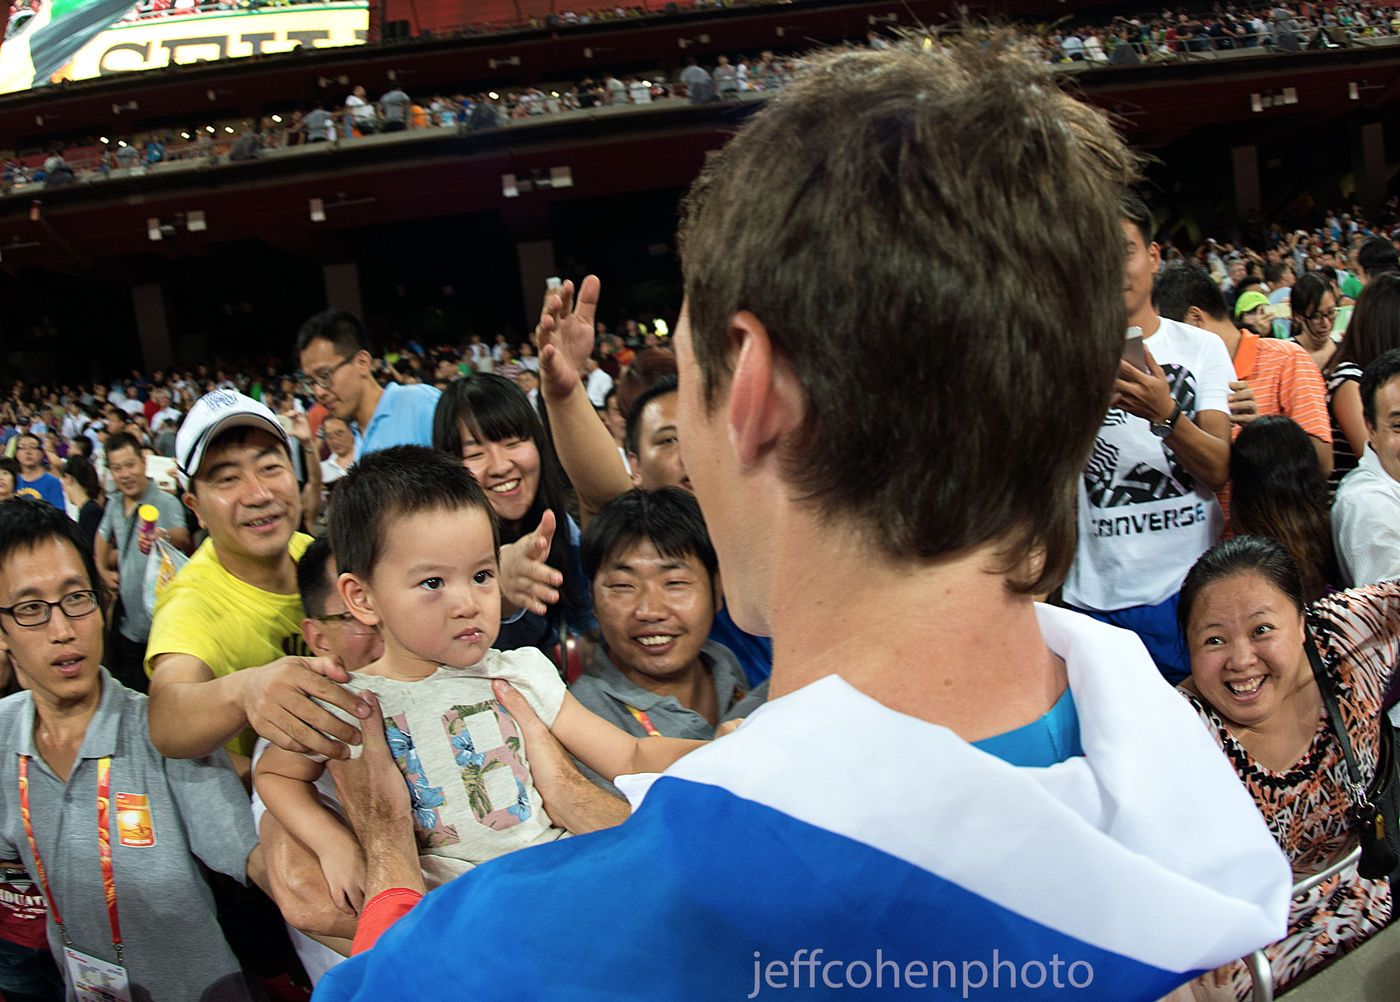 1beijing2015_night_7_shubencov_110h_final_kid_jeff_cohen_photo_29465_web.jpg